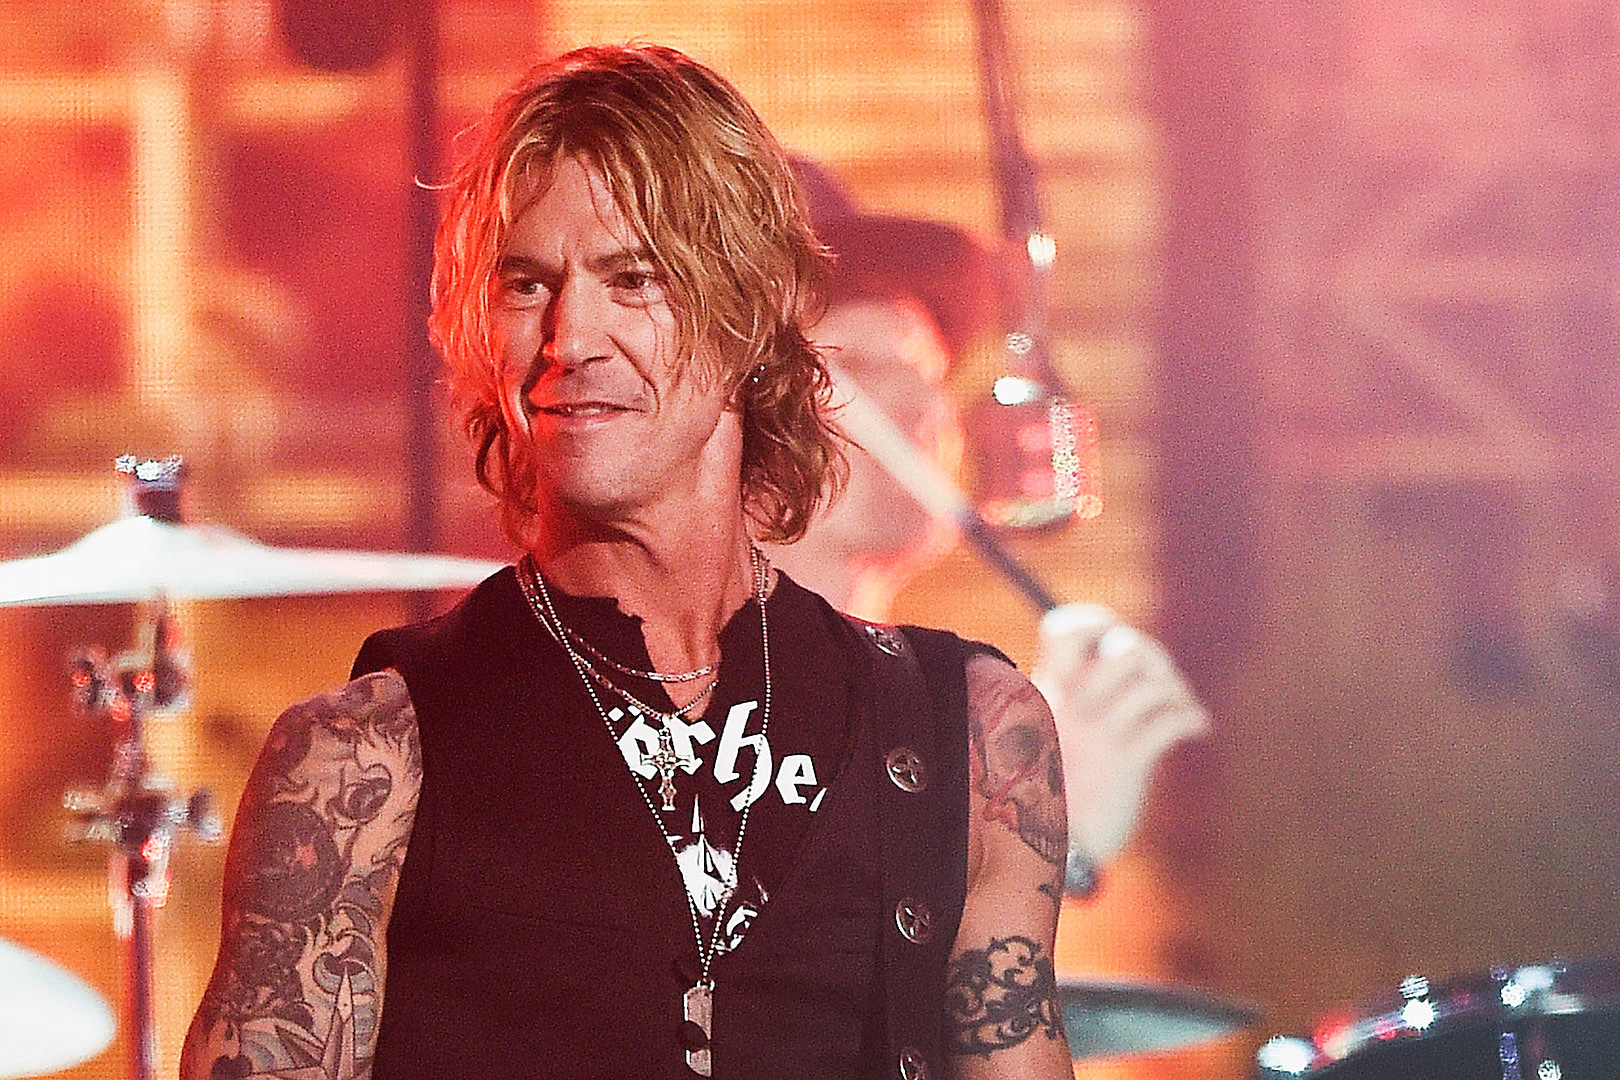 The 56-year old son of father (?) and mother(?) Duff Mckagan in 2020 photo. Duff Mckagan earned a million dollar salary - leaving the net worth at million in 2020